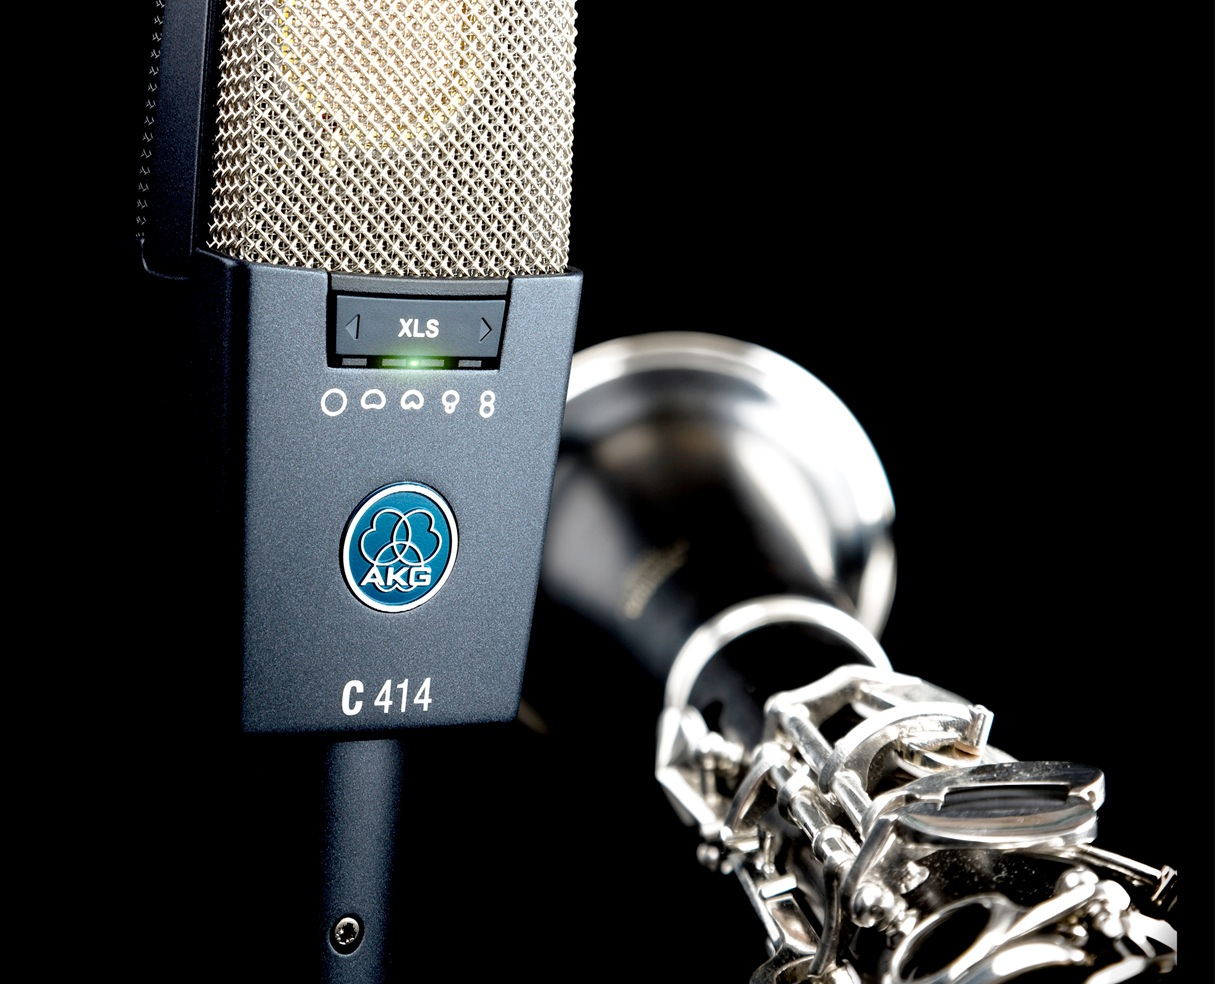 Our live microphones include: - AKG c414 XLS/BULS/TLIIShure KSM 141Shure KSM 32Shure SM7Neumann TLMElectro-Voice RE20… and many more!